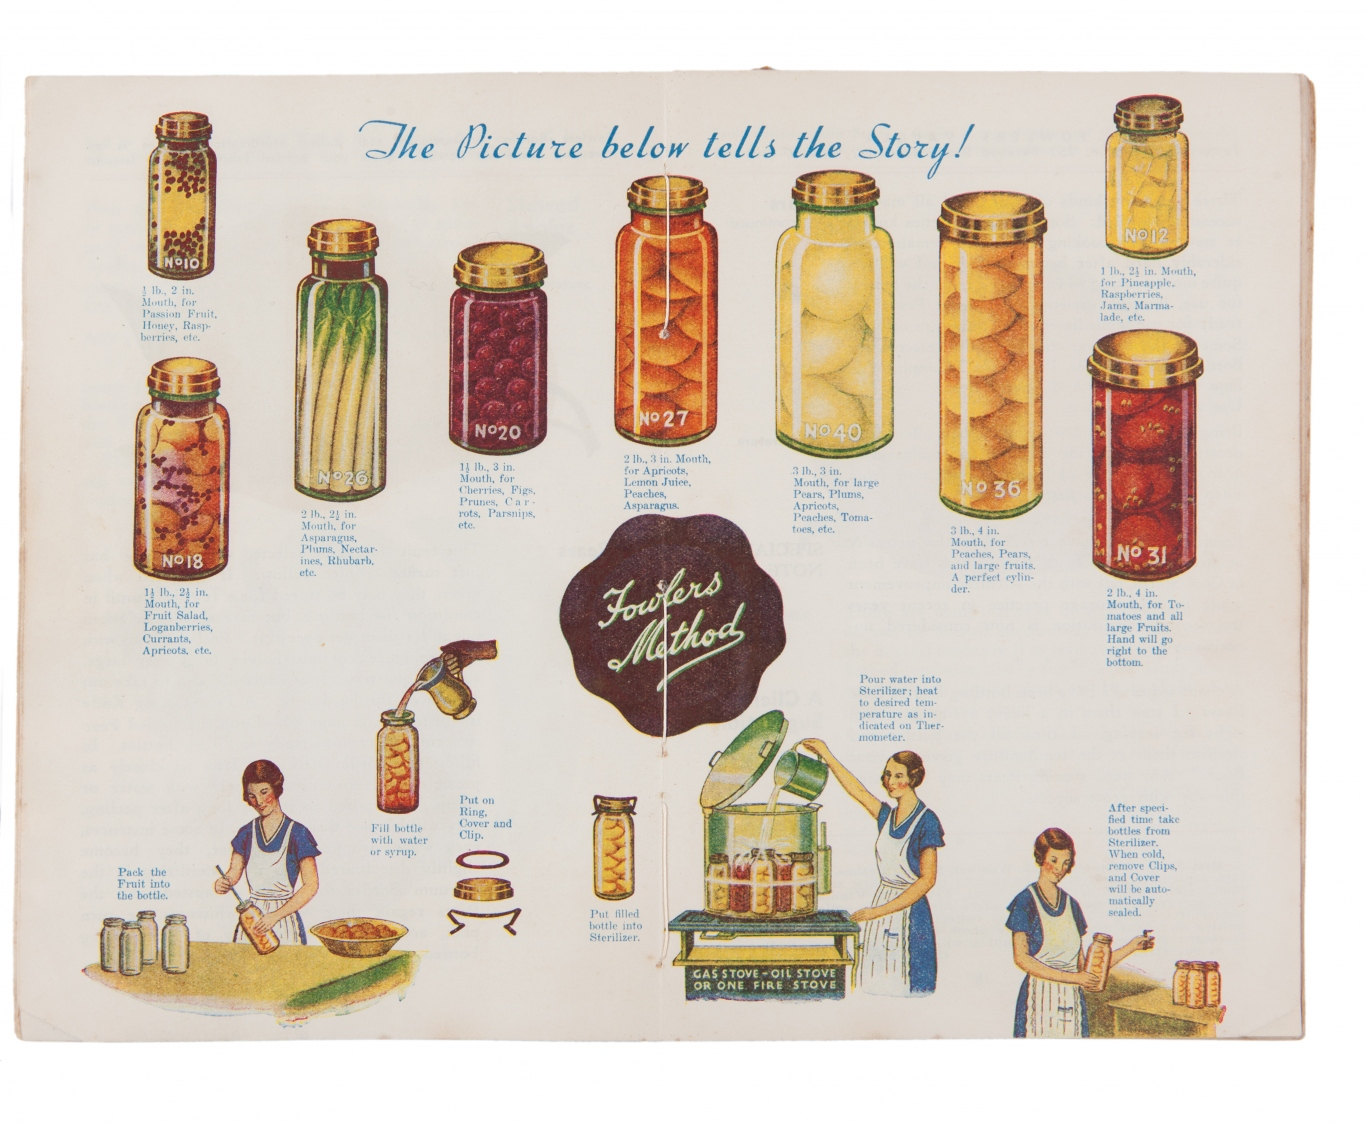 Page from a illustrated booklet with jars of pickles and illustrations of pickling techniques.